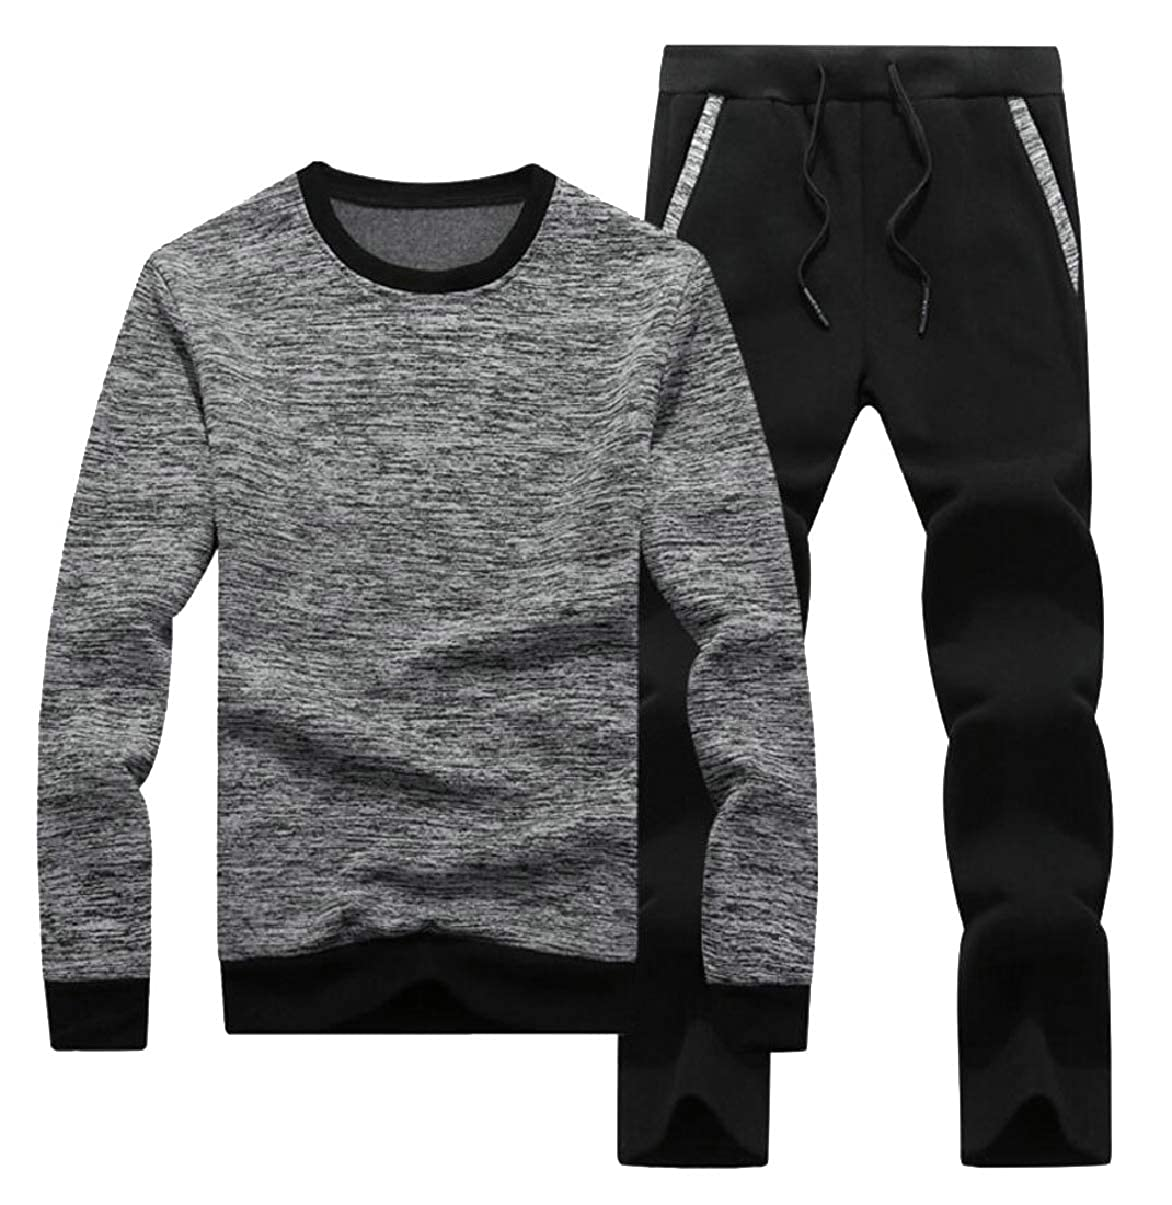 Grey US Small ZXFHZSCA Men's Casual Tracksuit Crew Neck Long Sleeve Jogging Athletic Sports Set